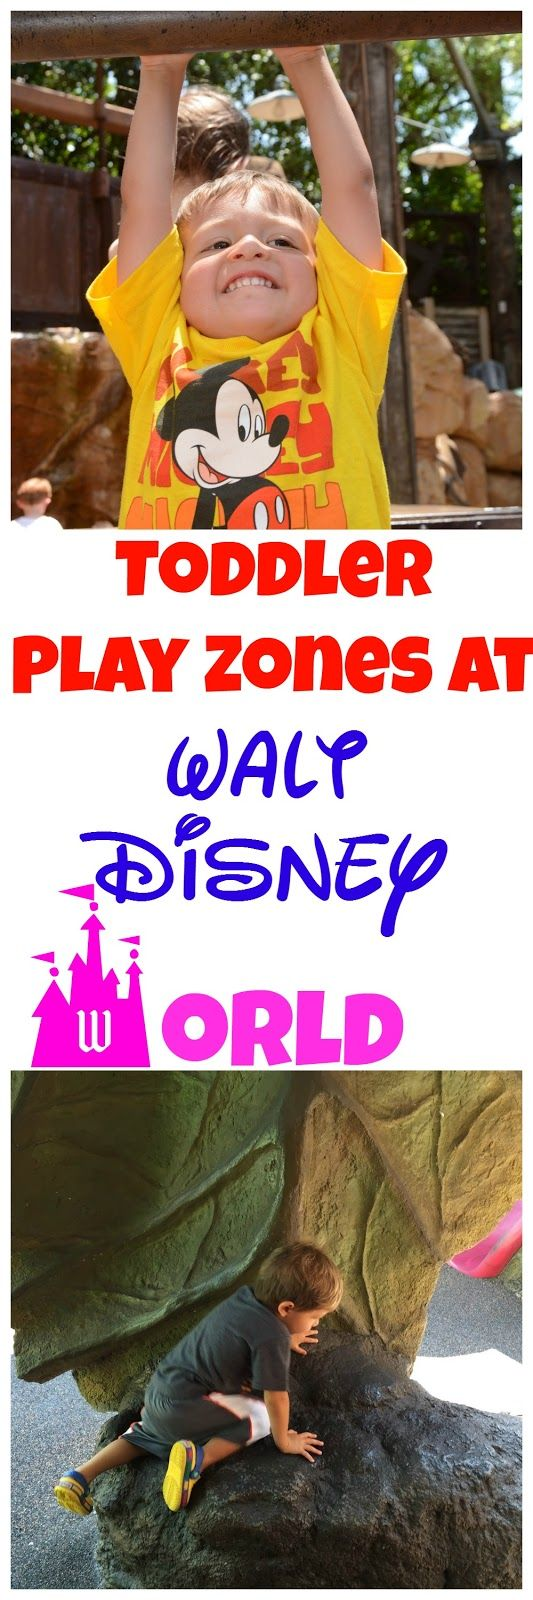 Yes, Younger Kids can have fun at Walt Disney World     While I've always loved going to Disney's parks as a child and an adult, goi...